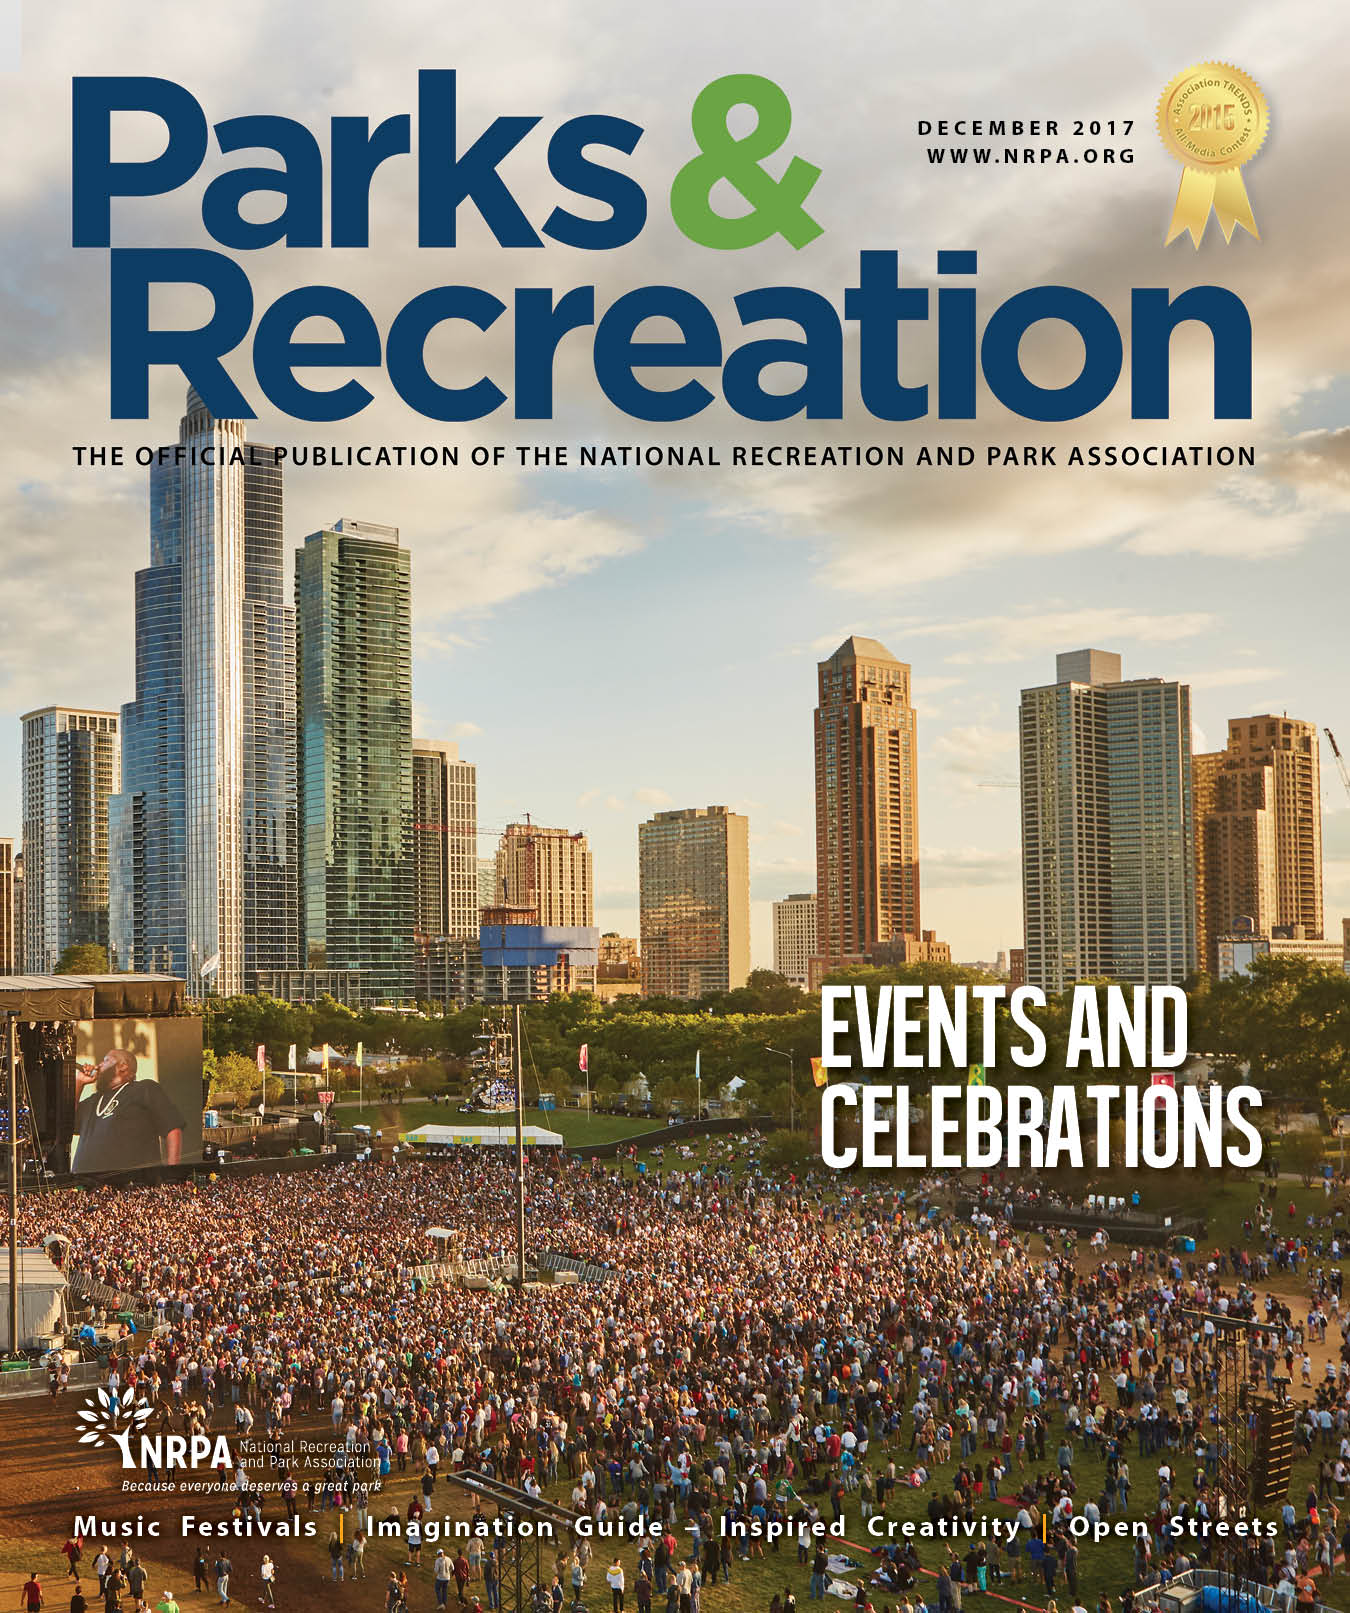 Parks & Recreation Magazine